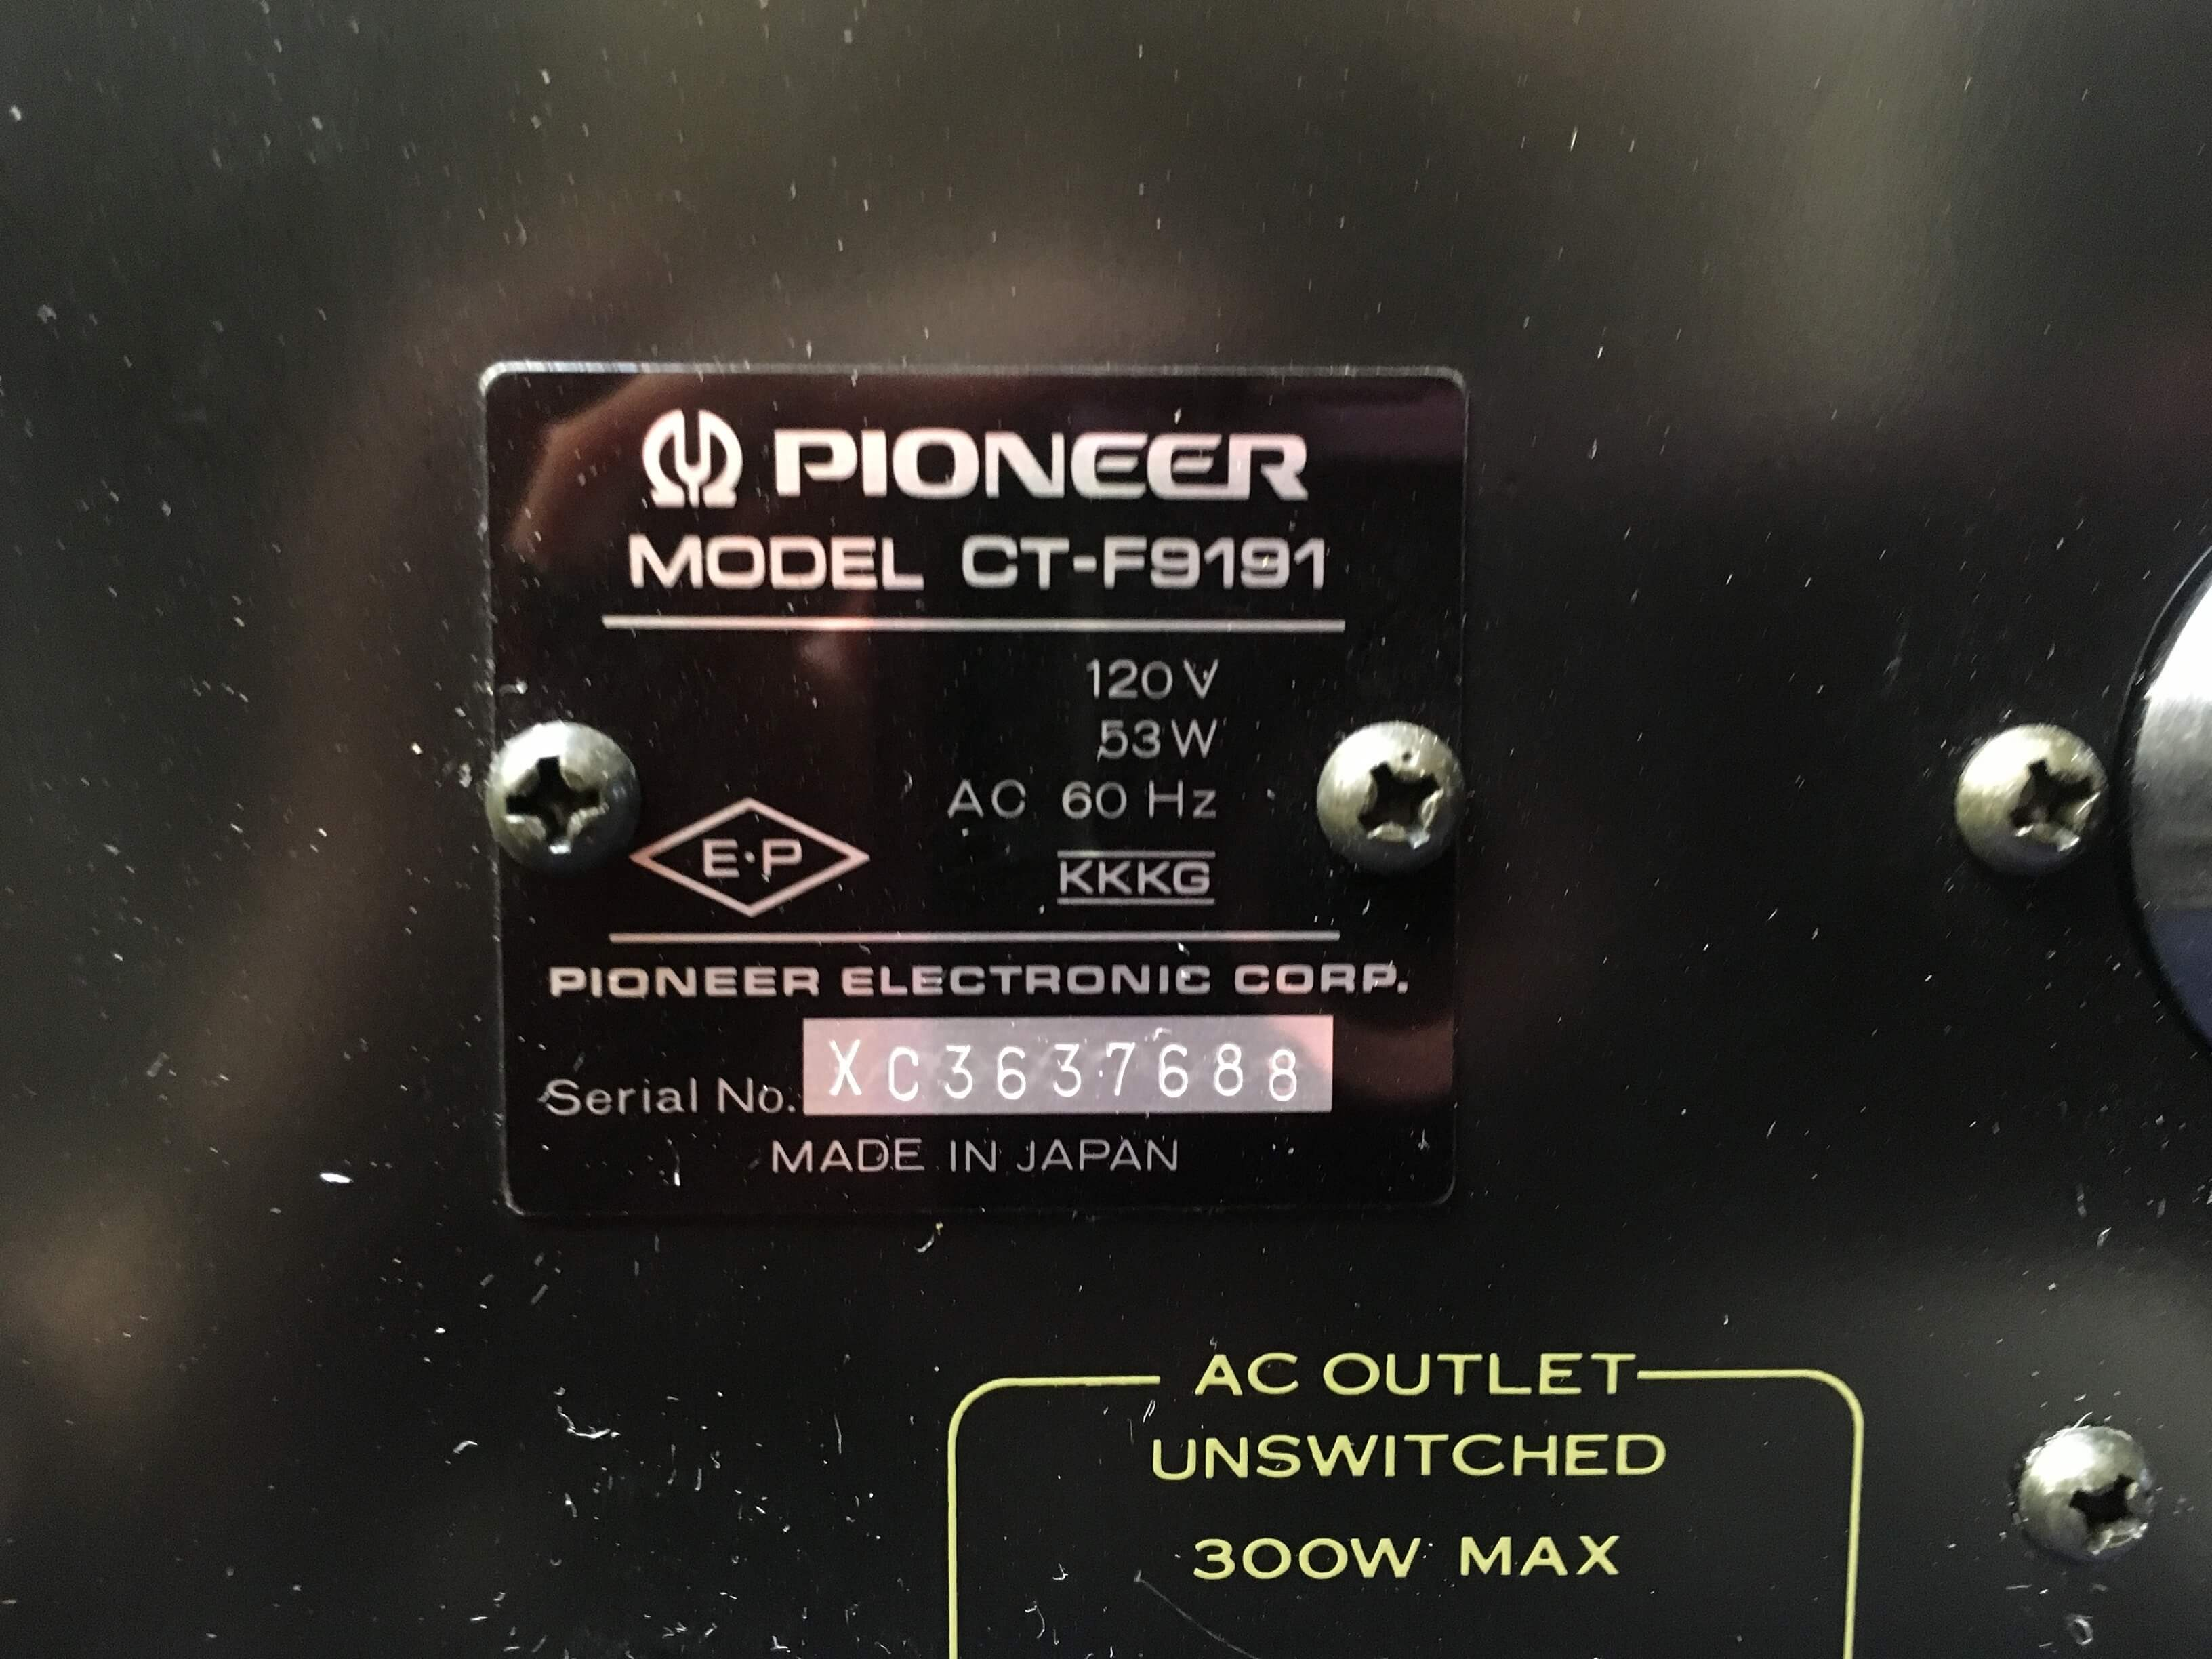 Pioneer cassette tape deck CT-F9191 (sold only with Pioneer receiver SX-1050)